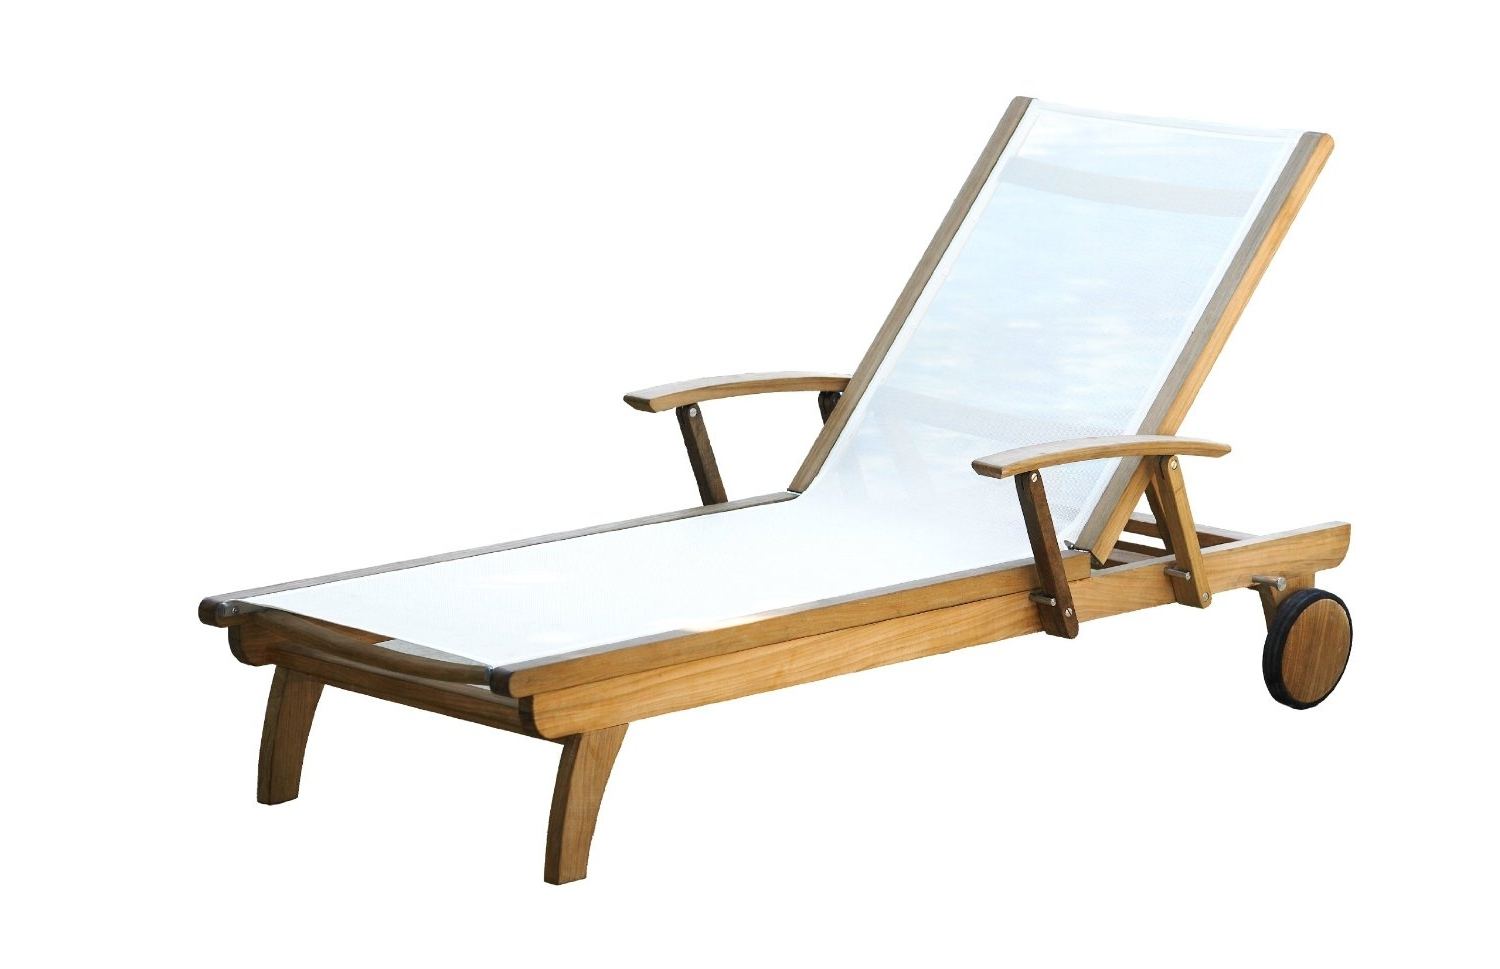 Teak Chaise Lounge Chair – Teak Patio Furniture World For Trendy Teak Chaises (View 8 of 15)